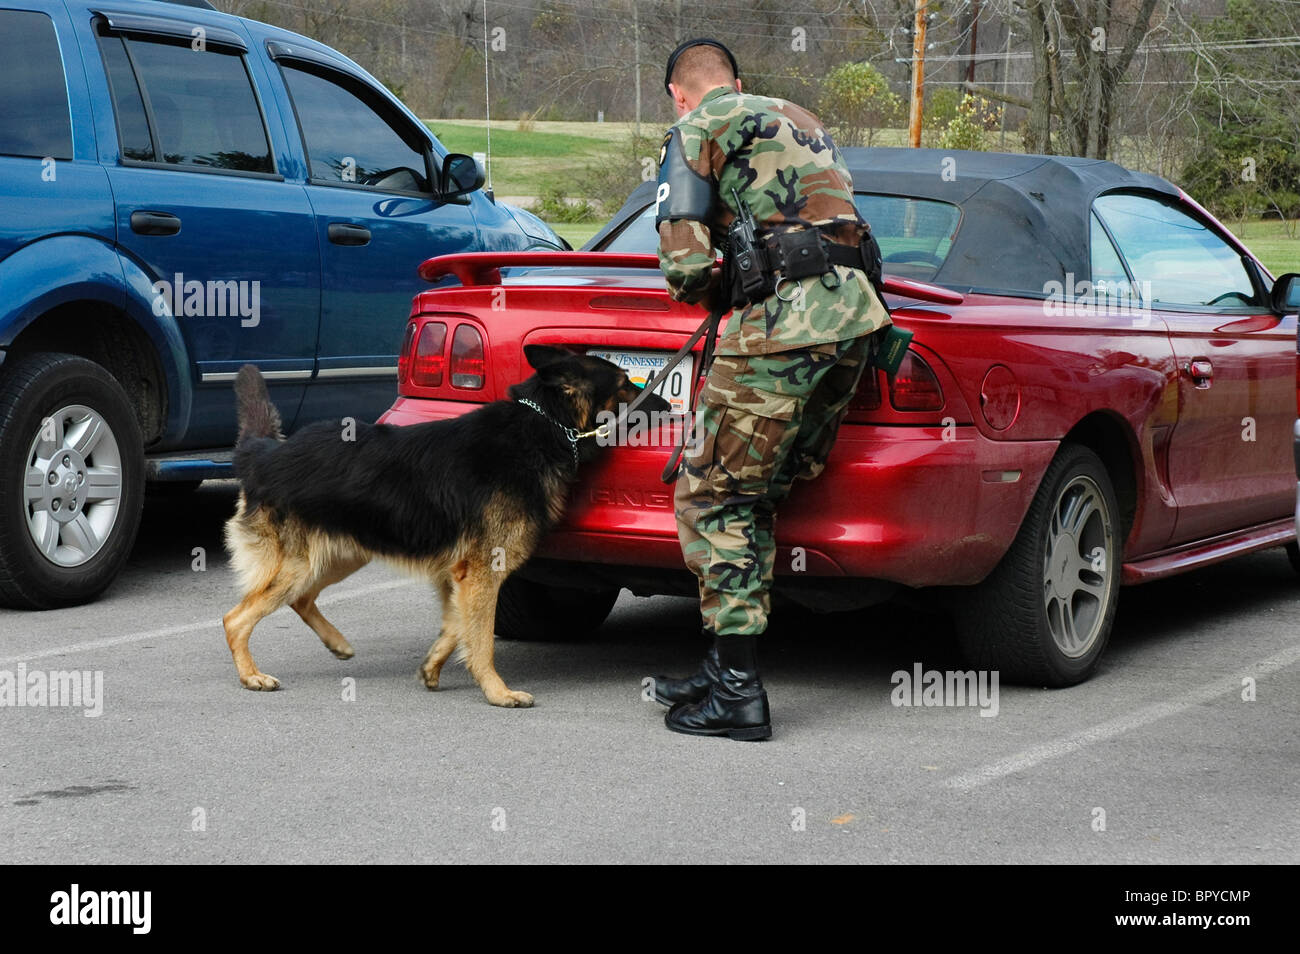 Drug Sniffing Dog Stock Photos & Drug Sniffing Dog Stock ...